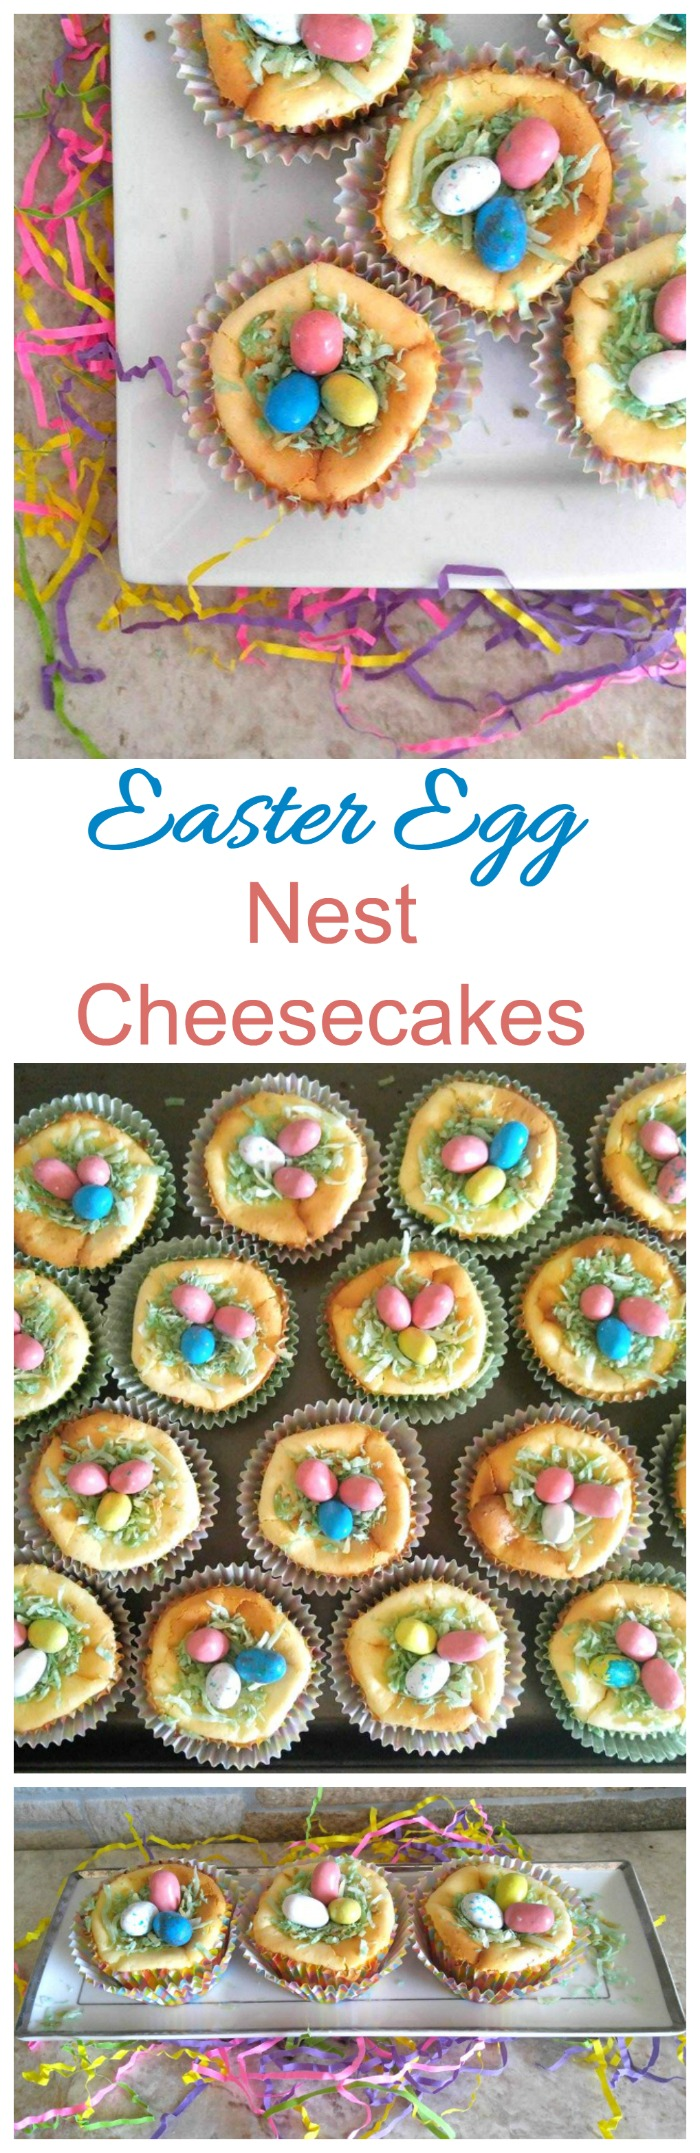 These Easter Egg Nest Cheesecakes are sure to be the hit of your Easter dessert table. They are super easy to make and so delicious!